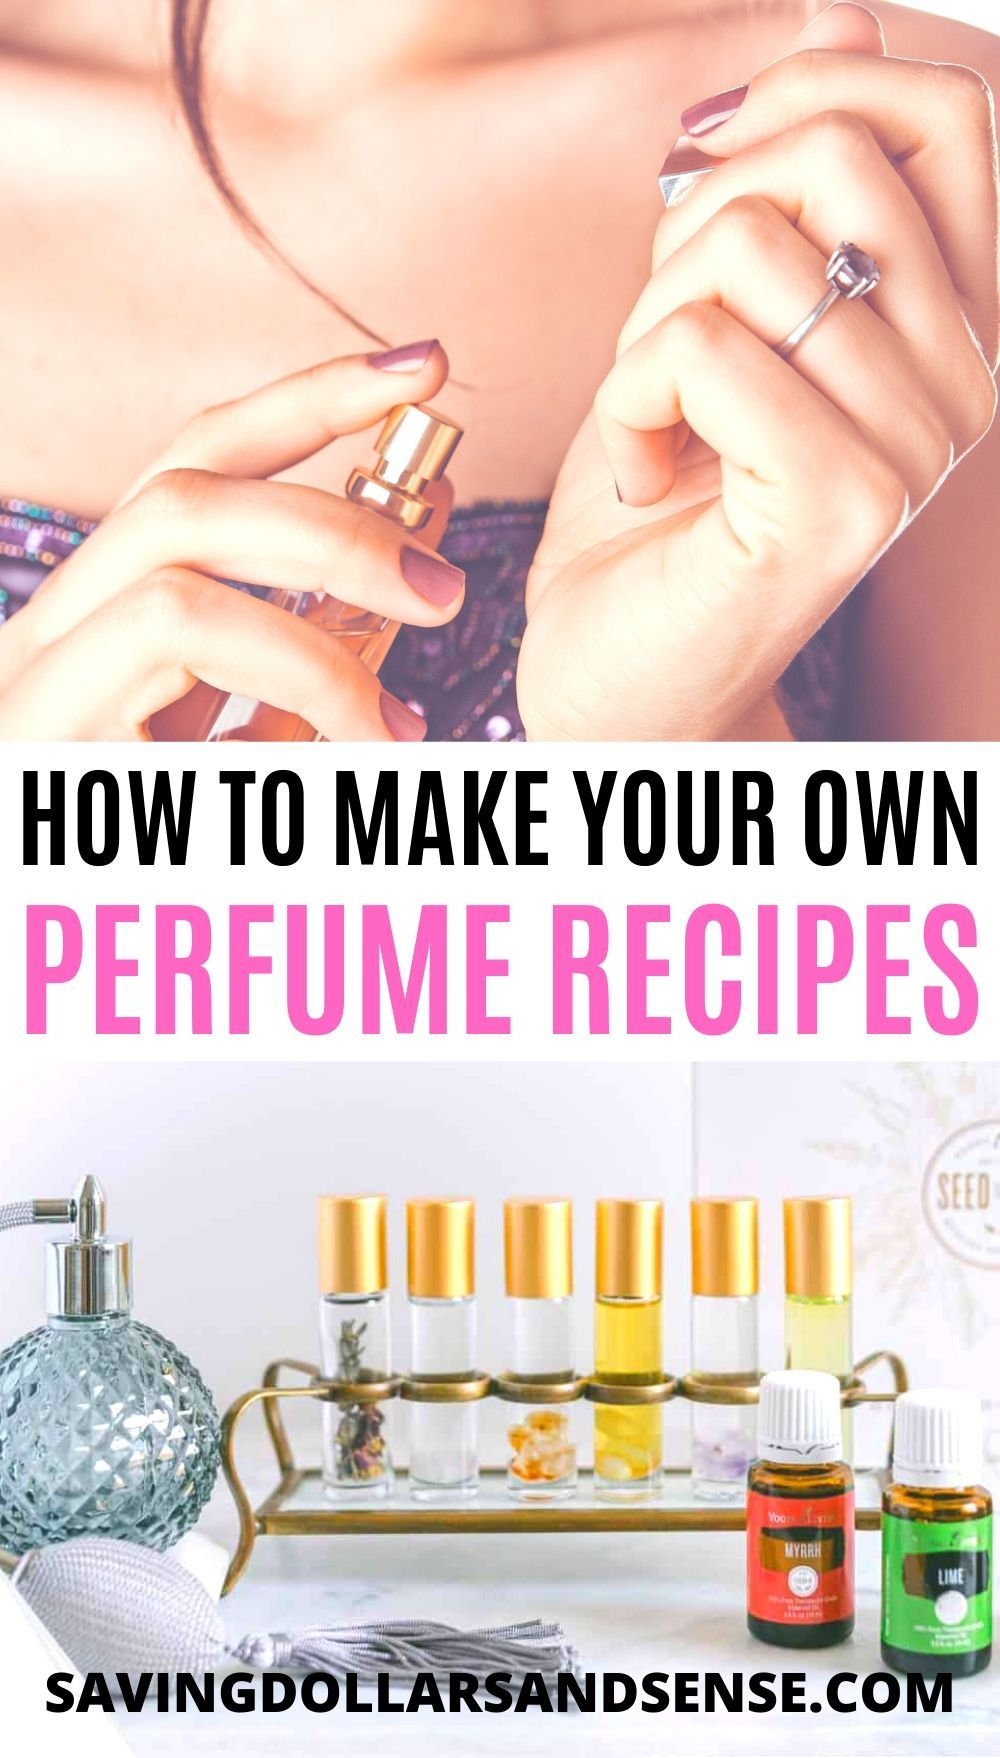 How To Make Perfume Saving Dollars Sense Perfume Recipes Diy Perfume Essential Oil Perfumes Recipes